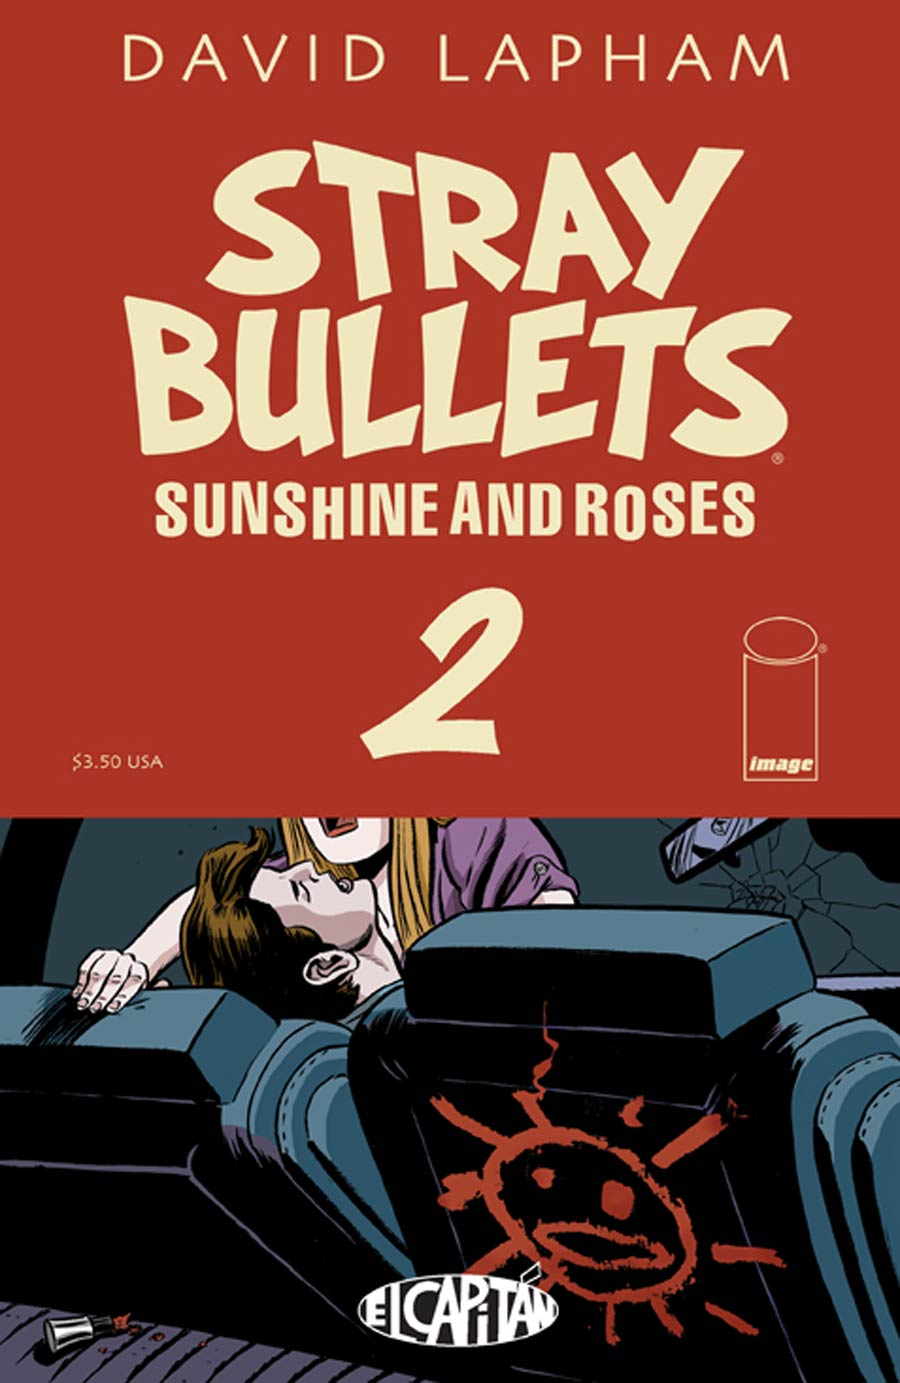 Stray Bullets Sunshine And Roses #2